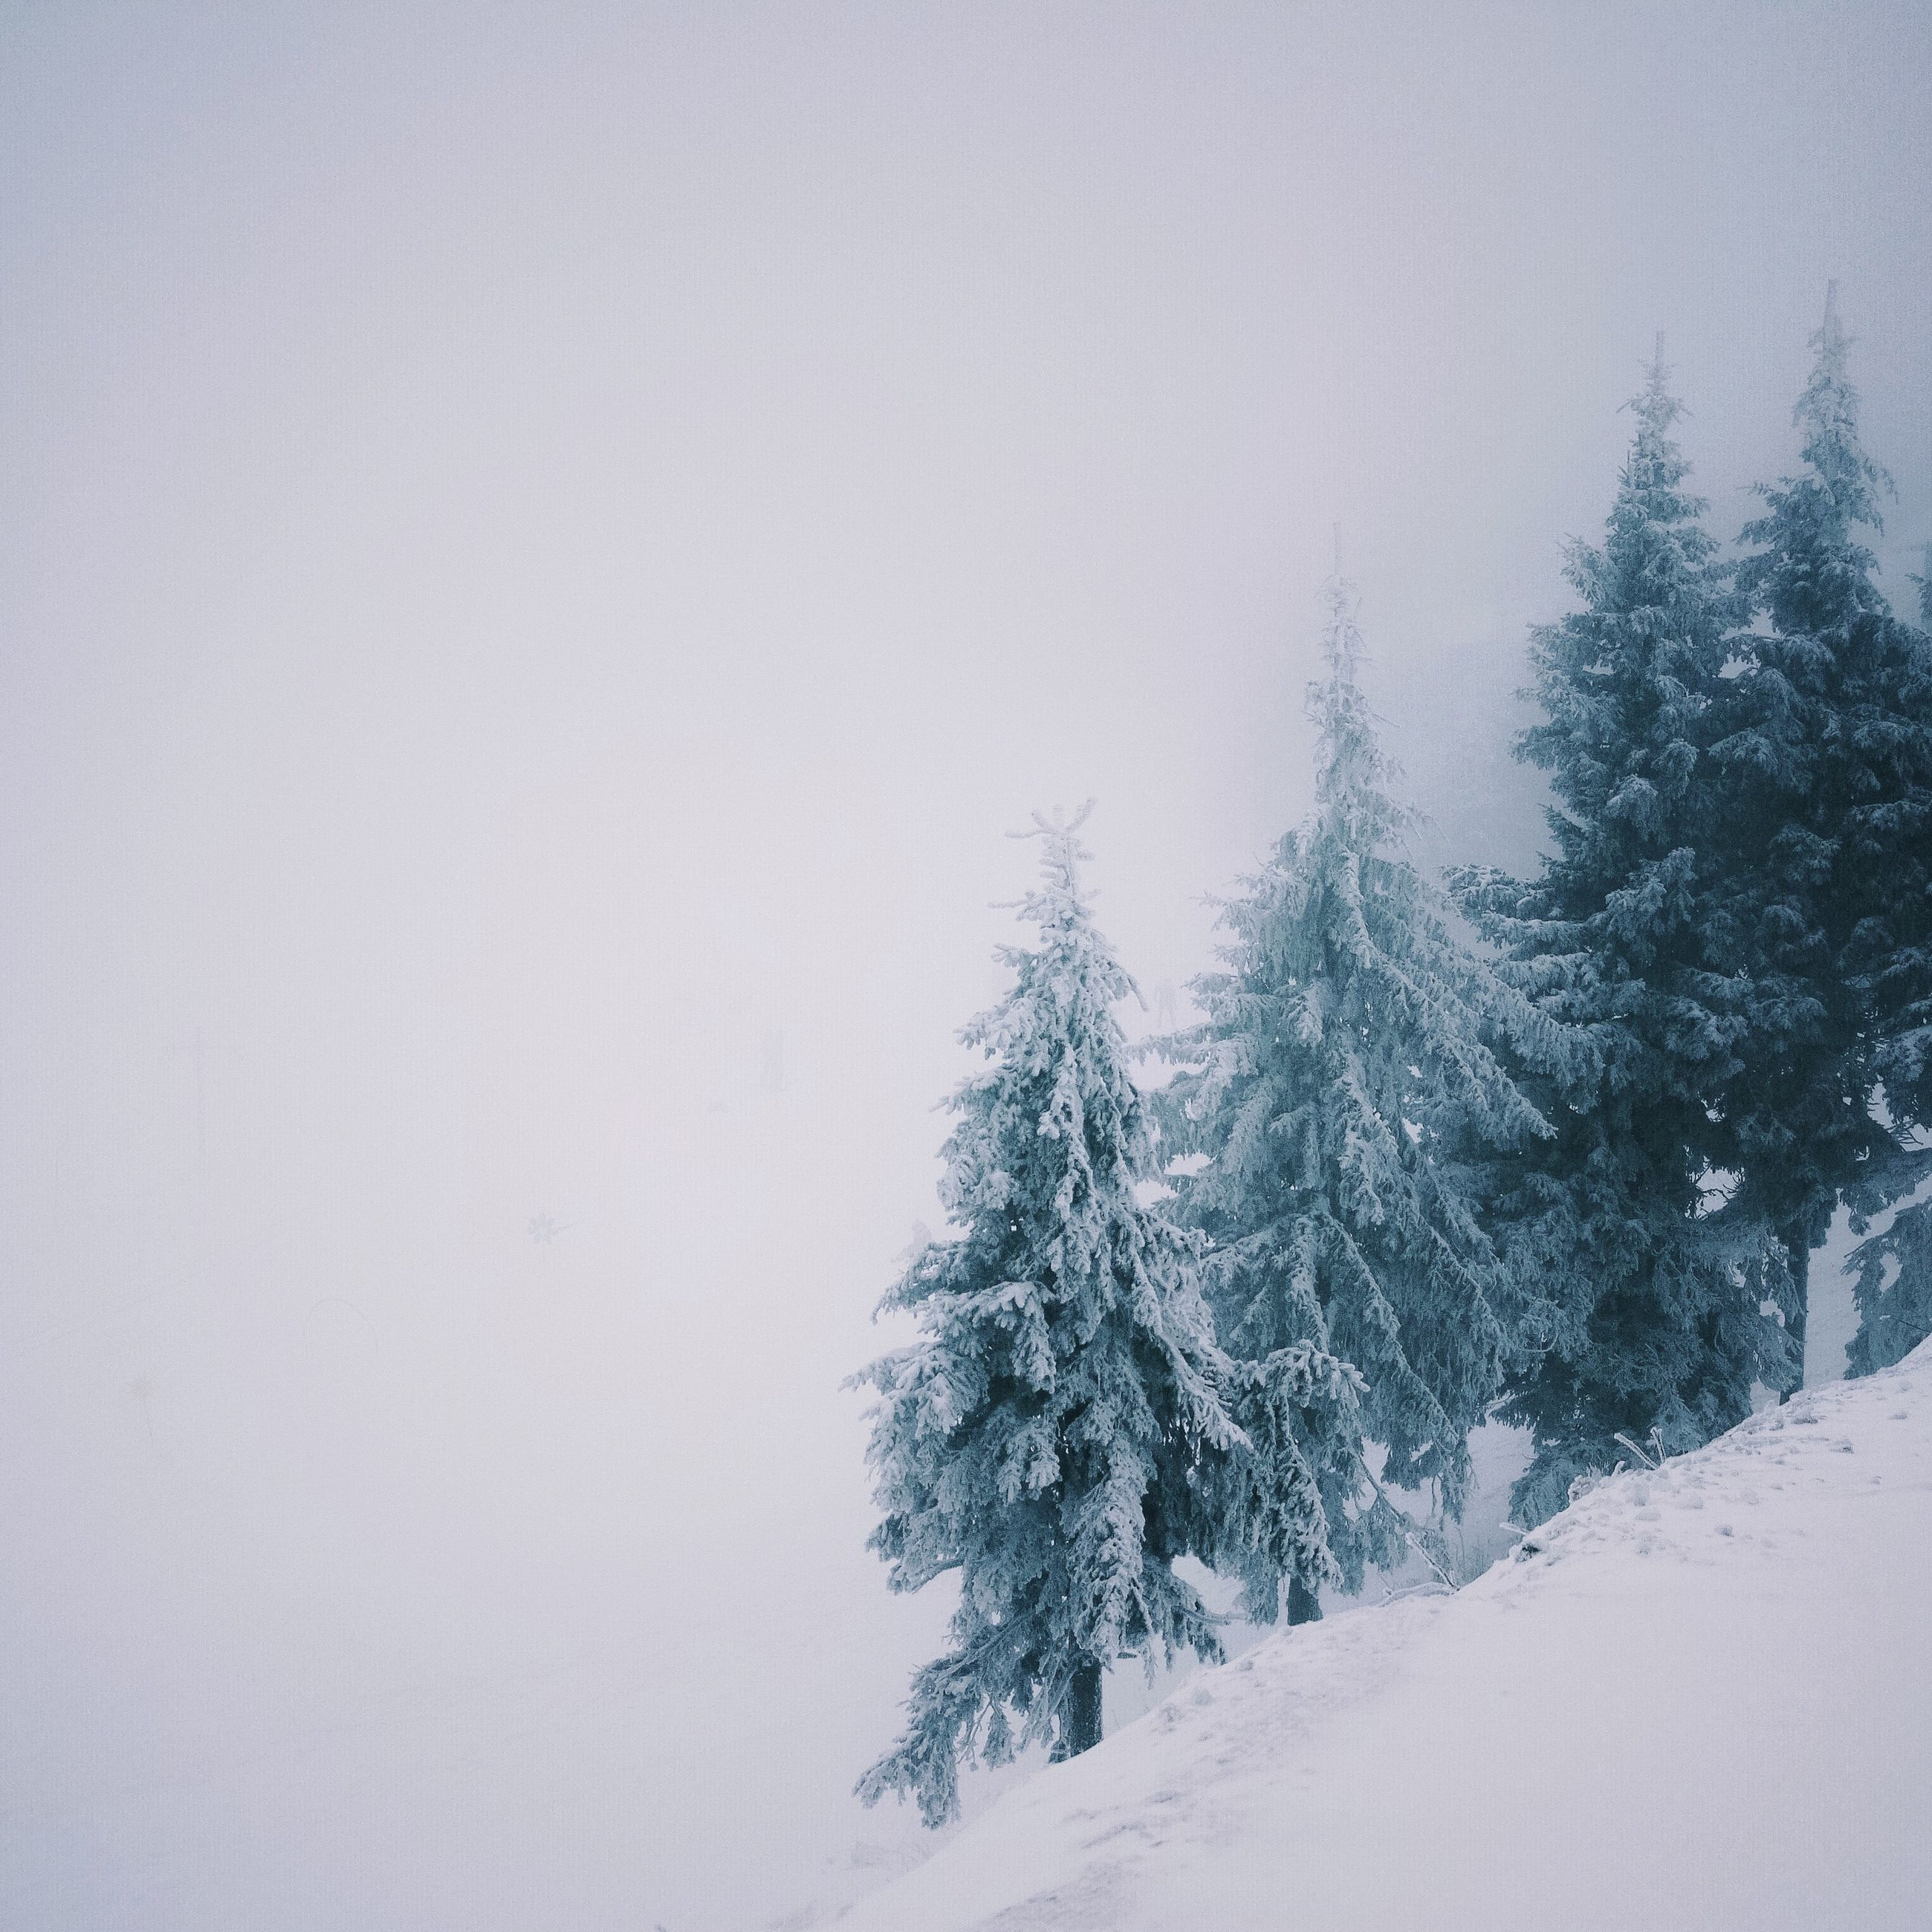 winter, snow, cold temperature, weather, tree, season, clear sky, tranquility, tranquil scene, copy space, nature, beauty in nature, covering, scenics, landscape, frozen, sky, bare tree, white color